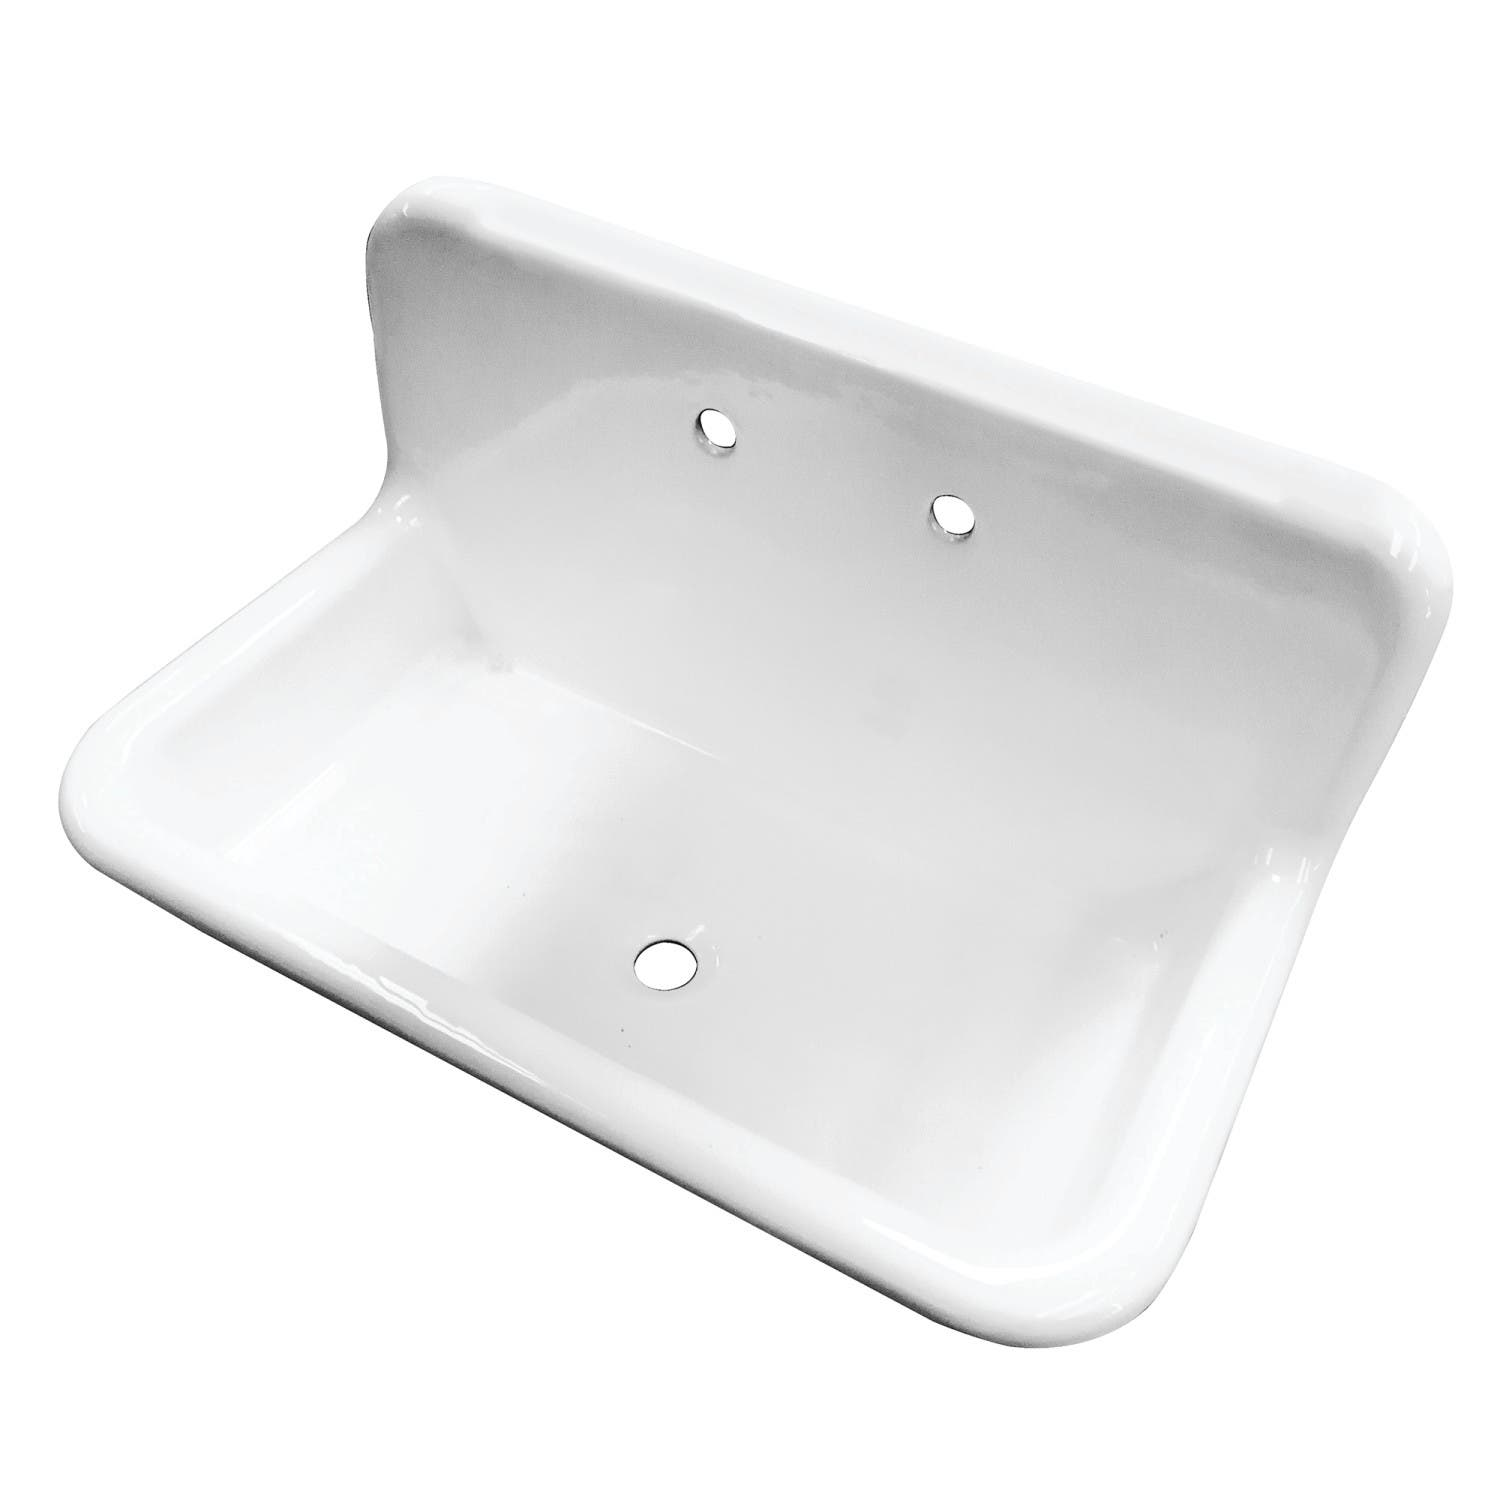 Gourmetier GCLWS362019 Wall Mounted Utility Sink, White